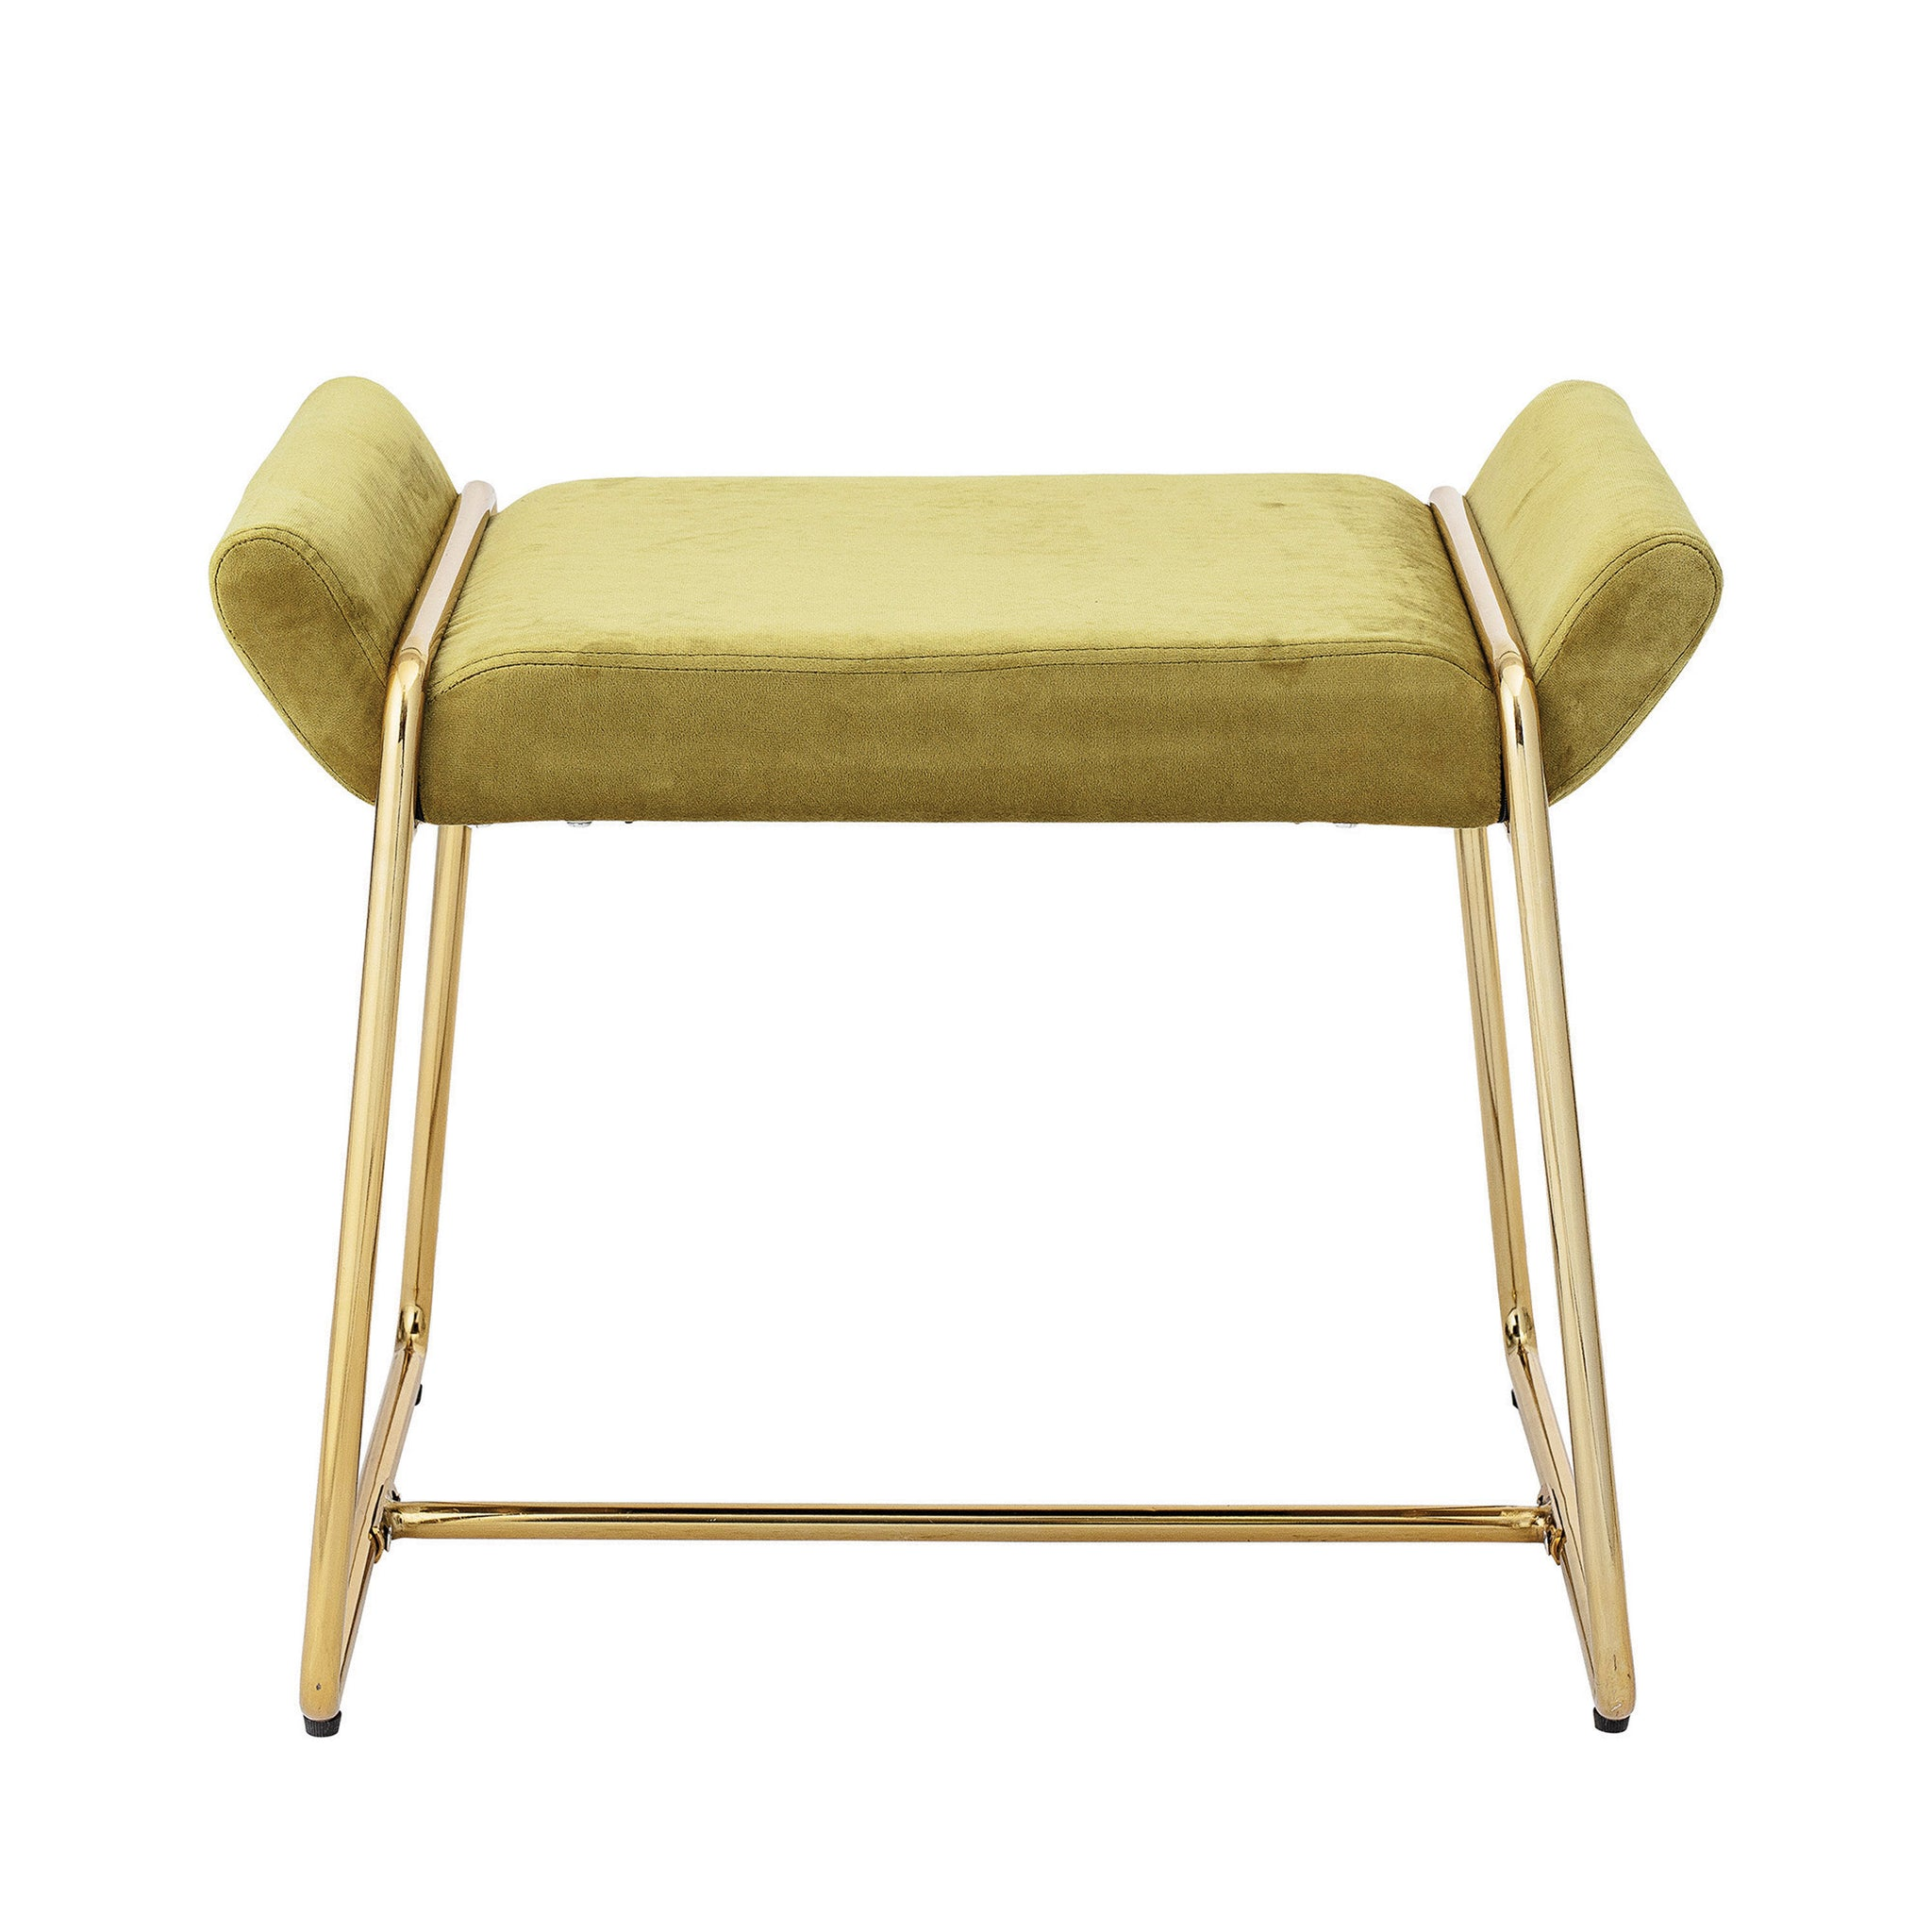 Chartreuse Upholstered Stool with Gold Metal Frame